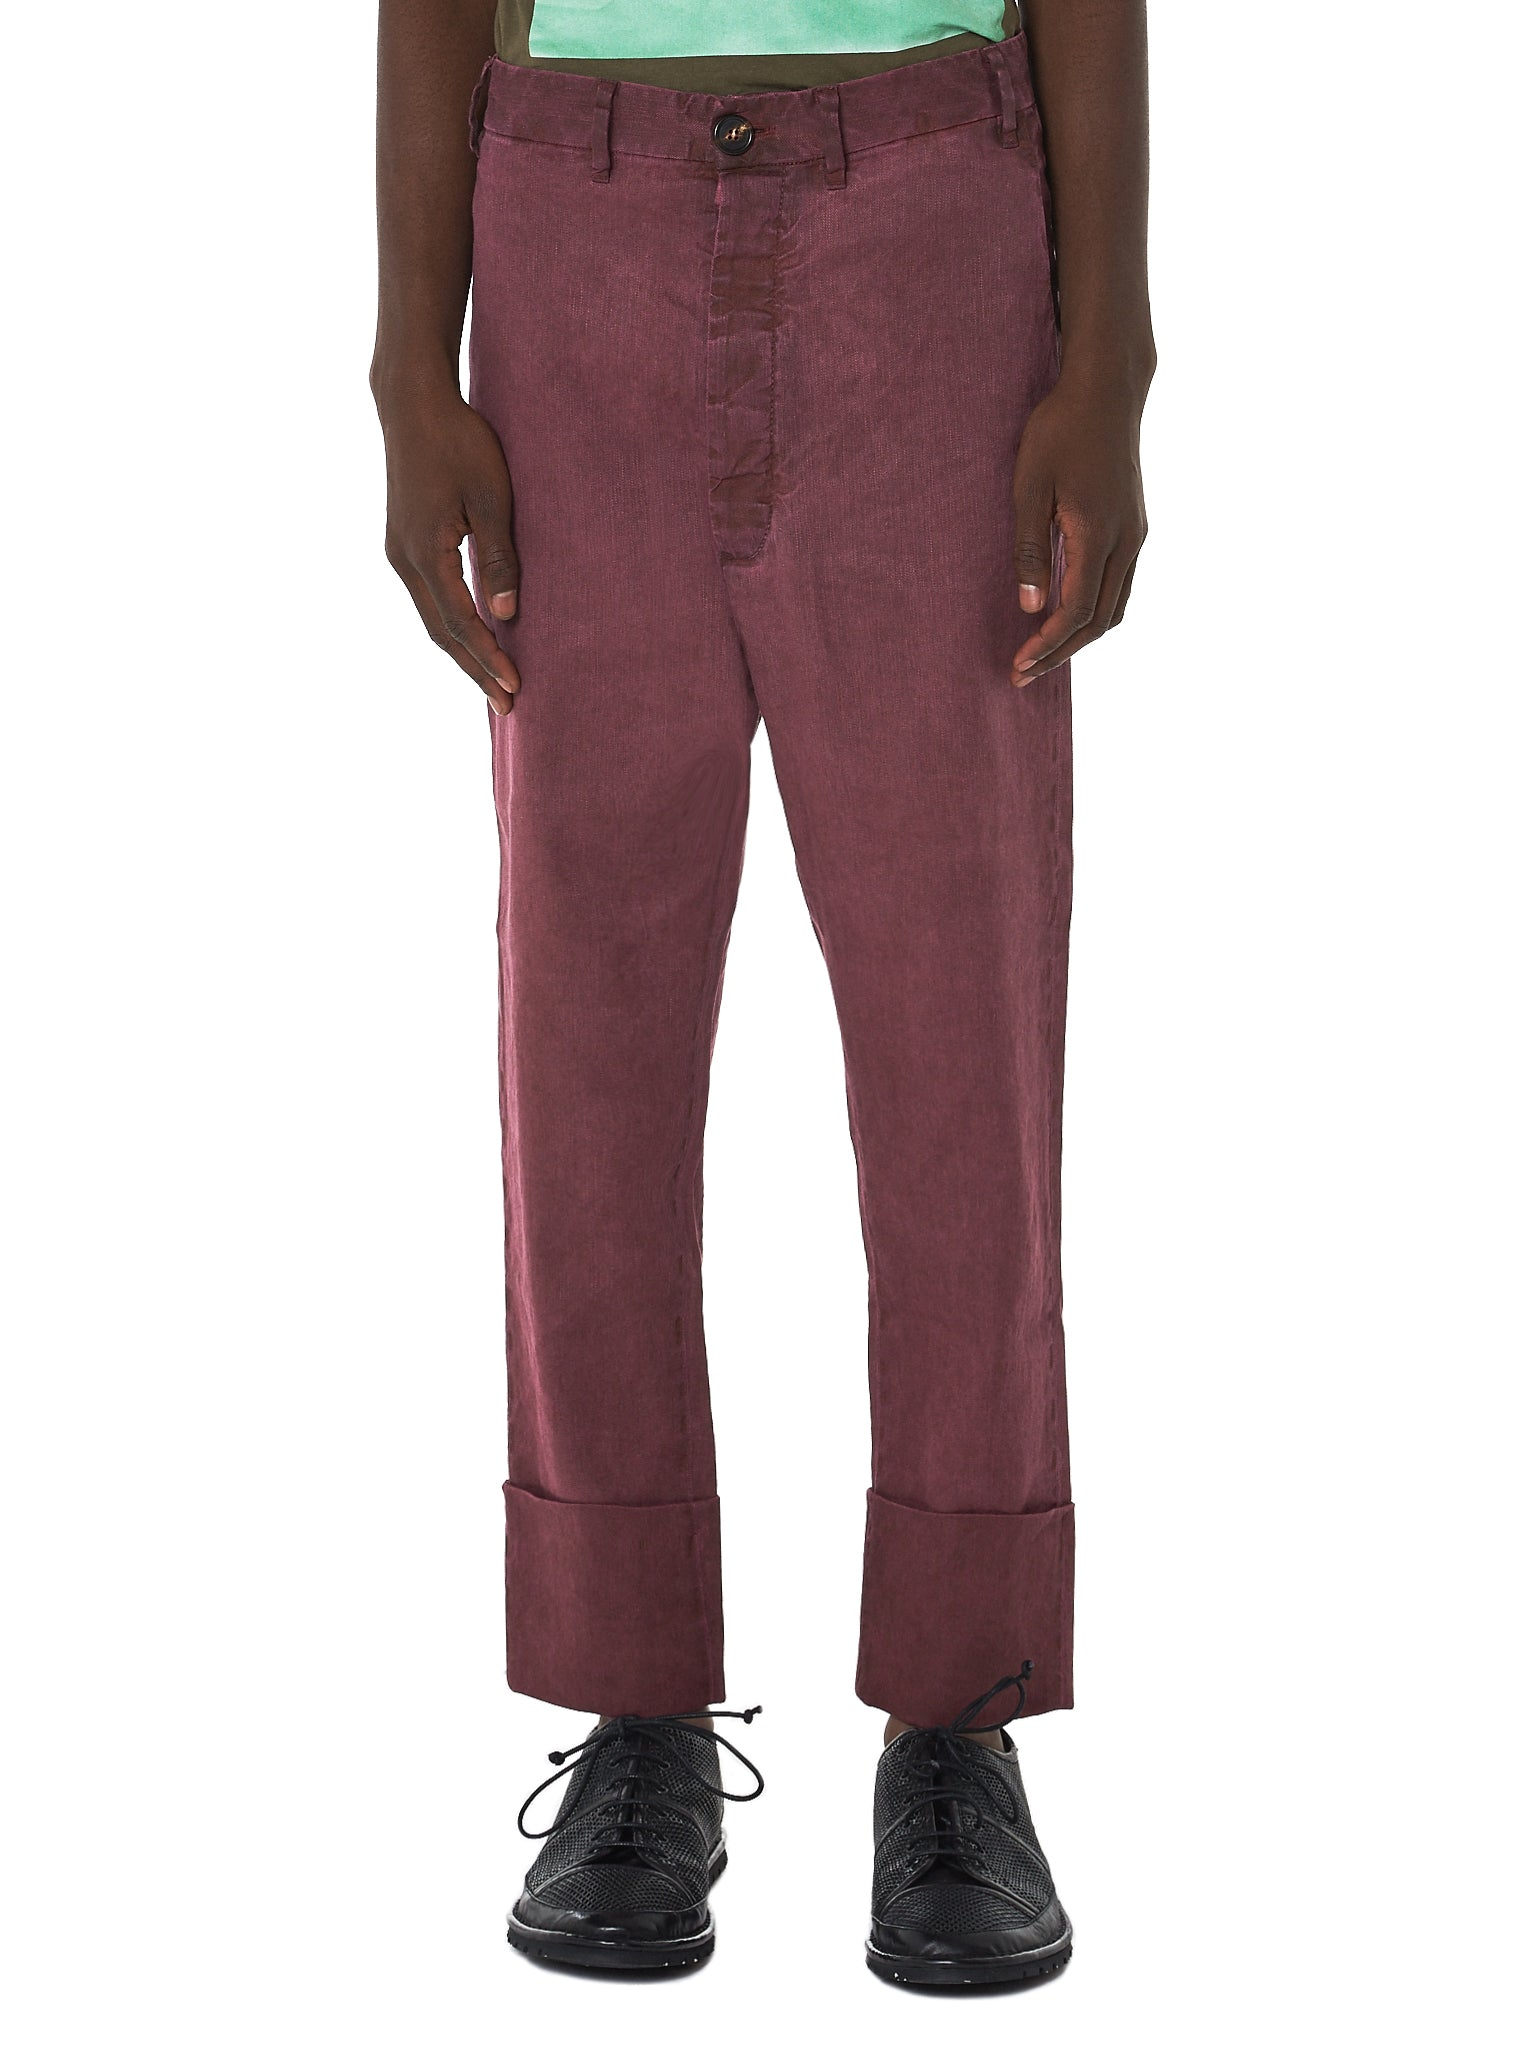 Vivienne Westwood Linen Trousers - Hlorenzo Front